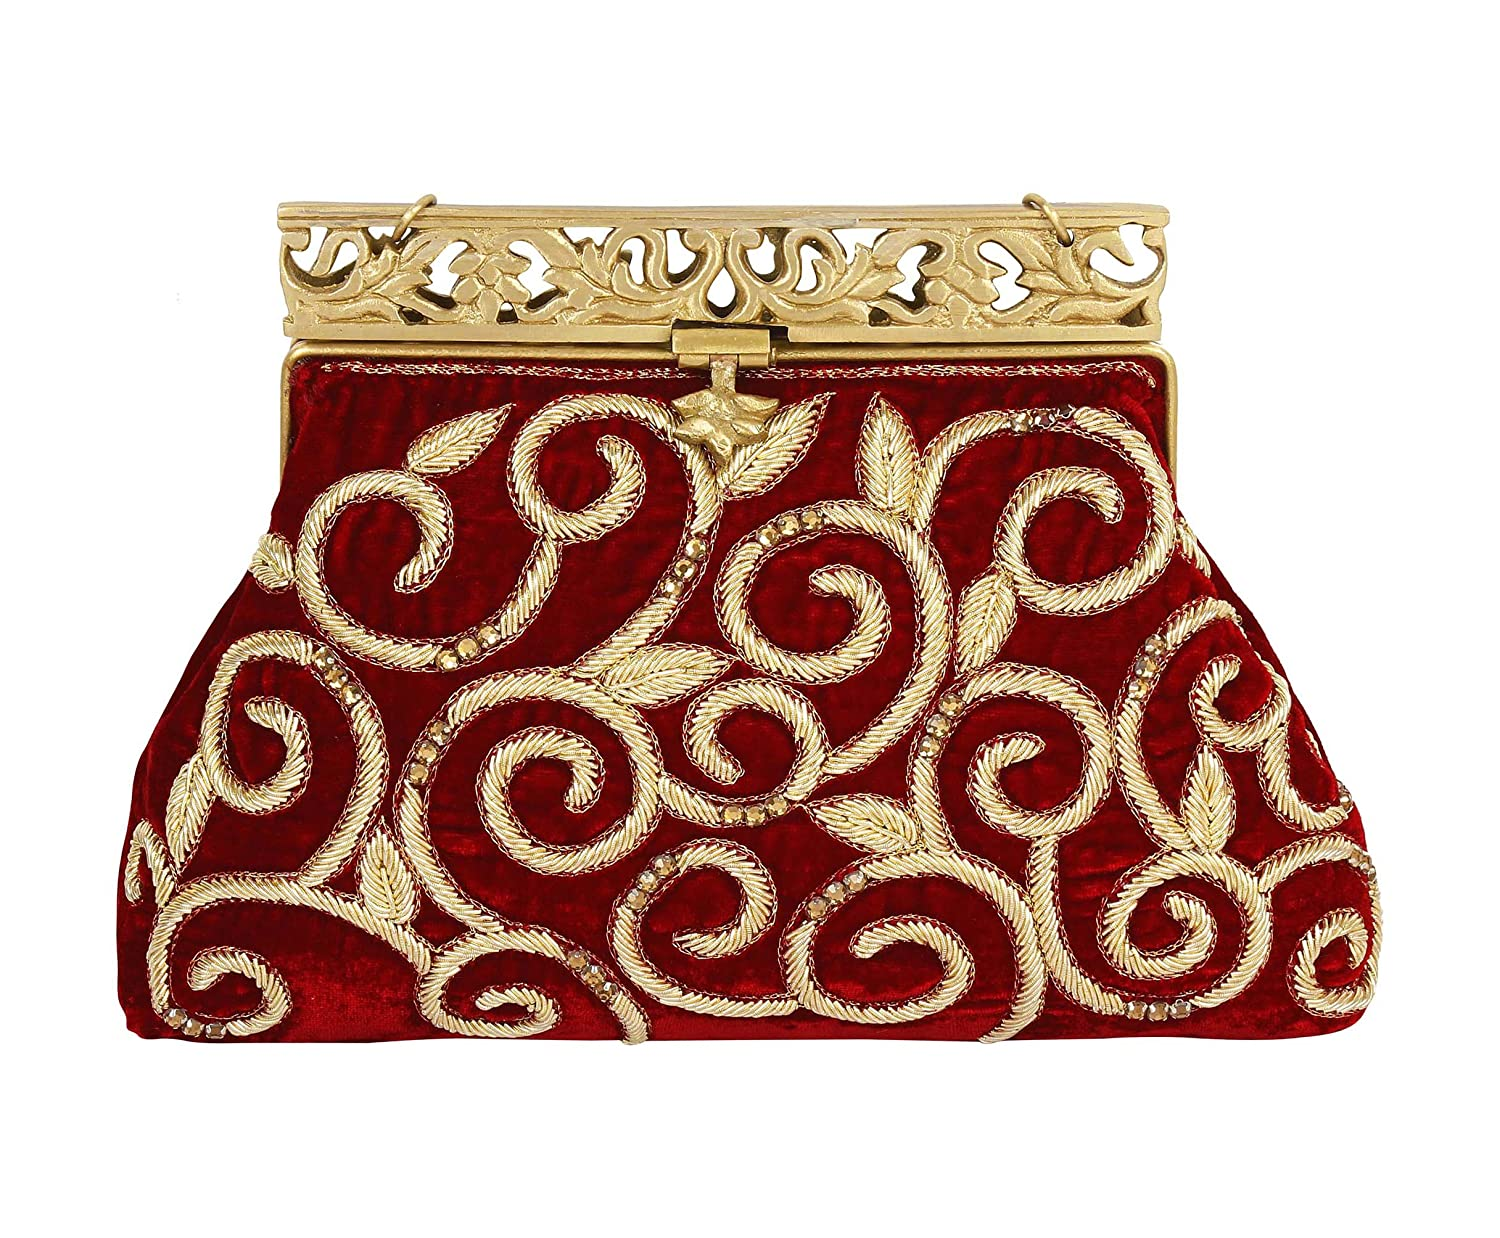 Purse Collection Red Handmade Clutch With Embroidery Work Purses For Women s   Handbags  Amazon.com c385574ae7